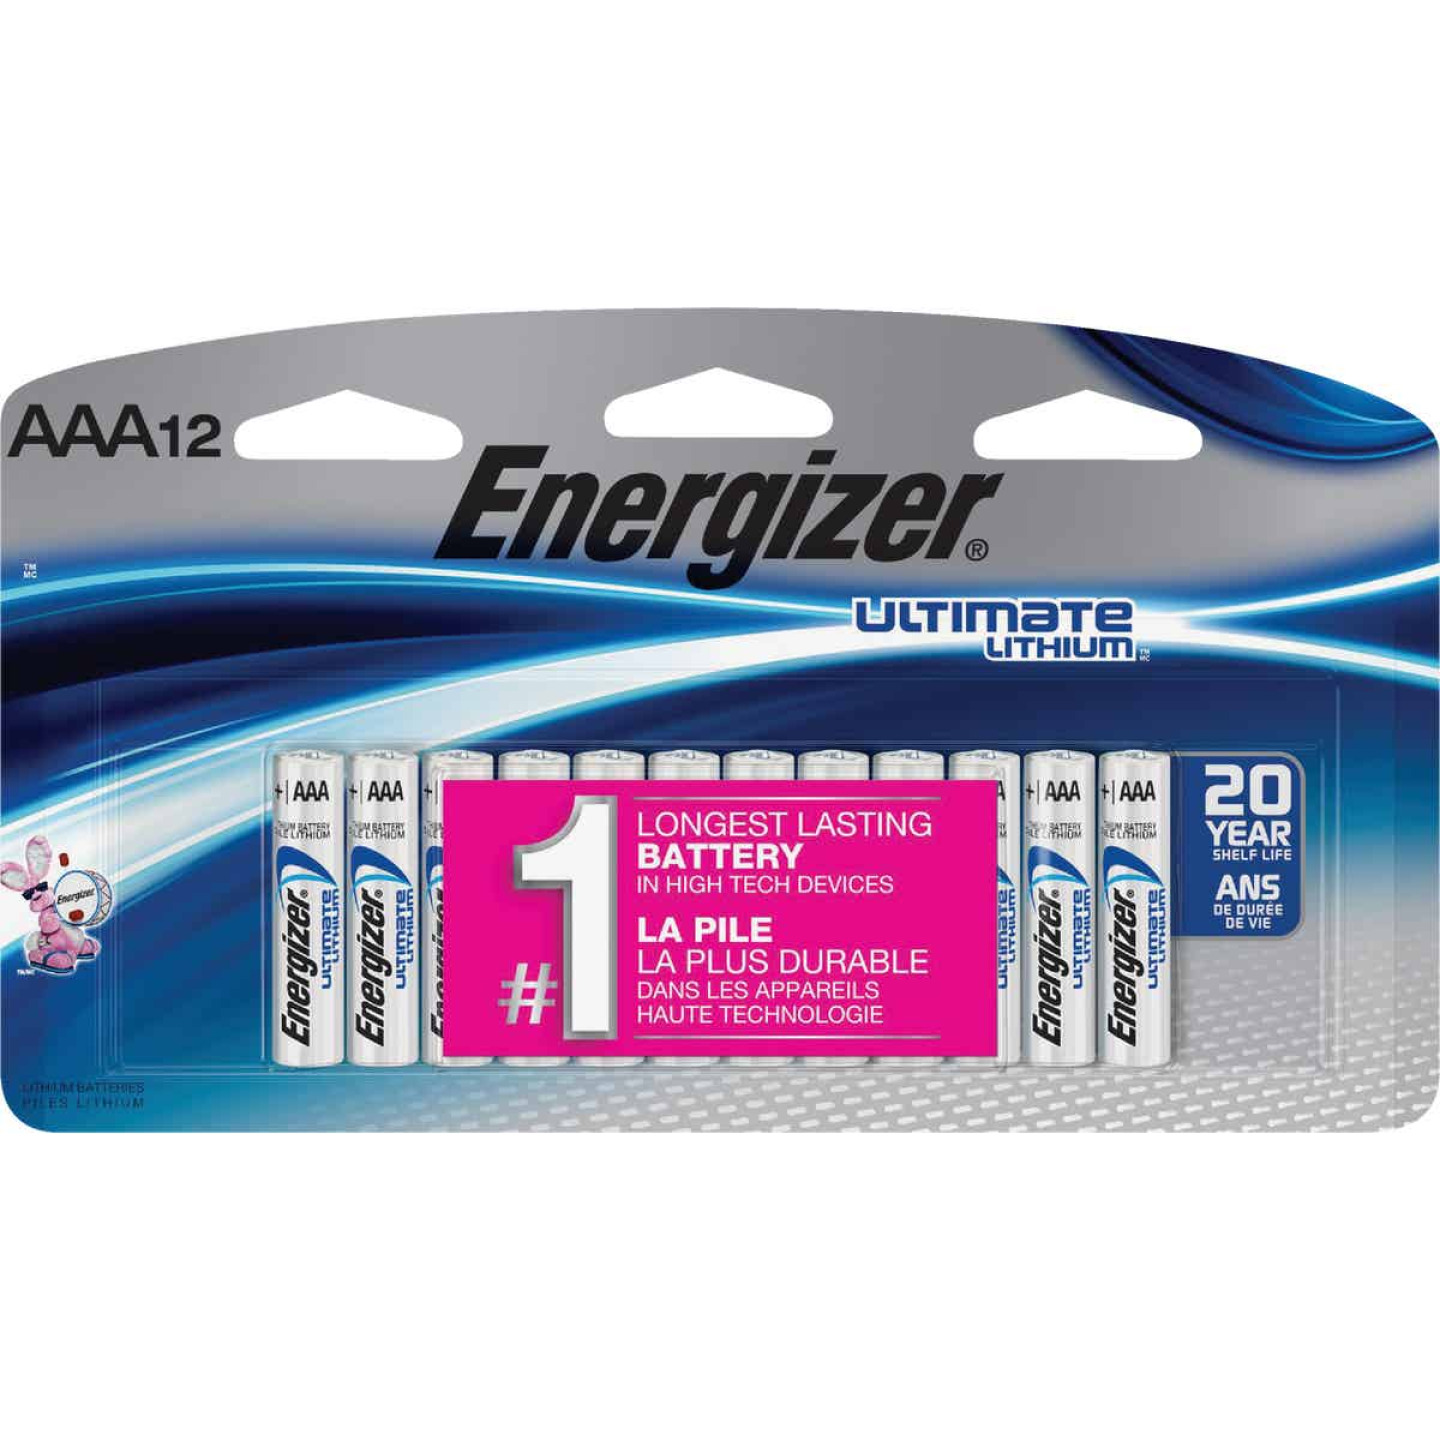 Energizer AAA Ultimate Lithium Battery (12-Pack) Image 1